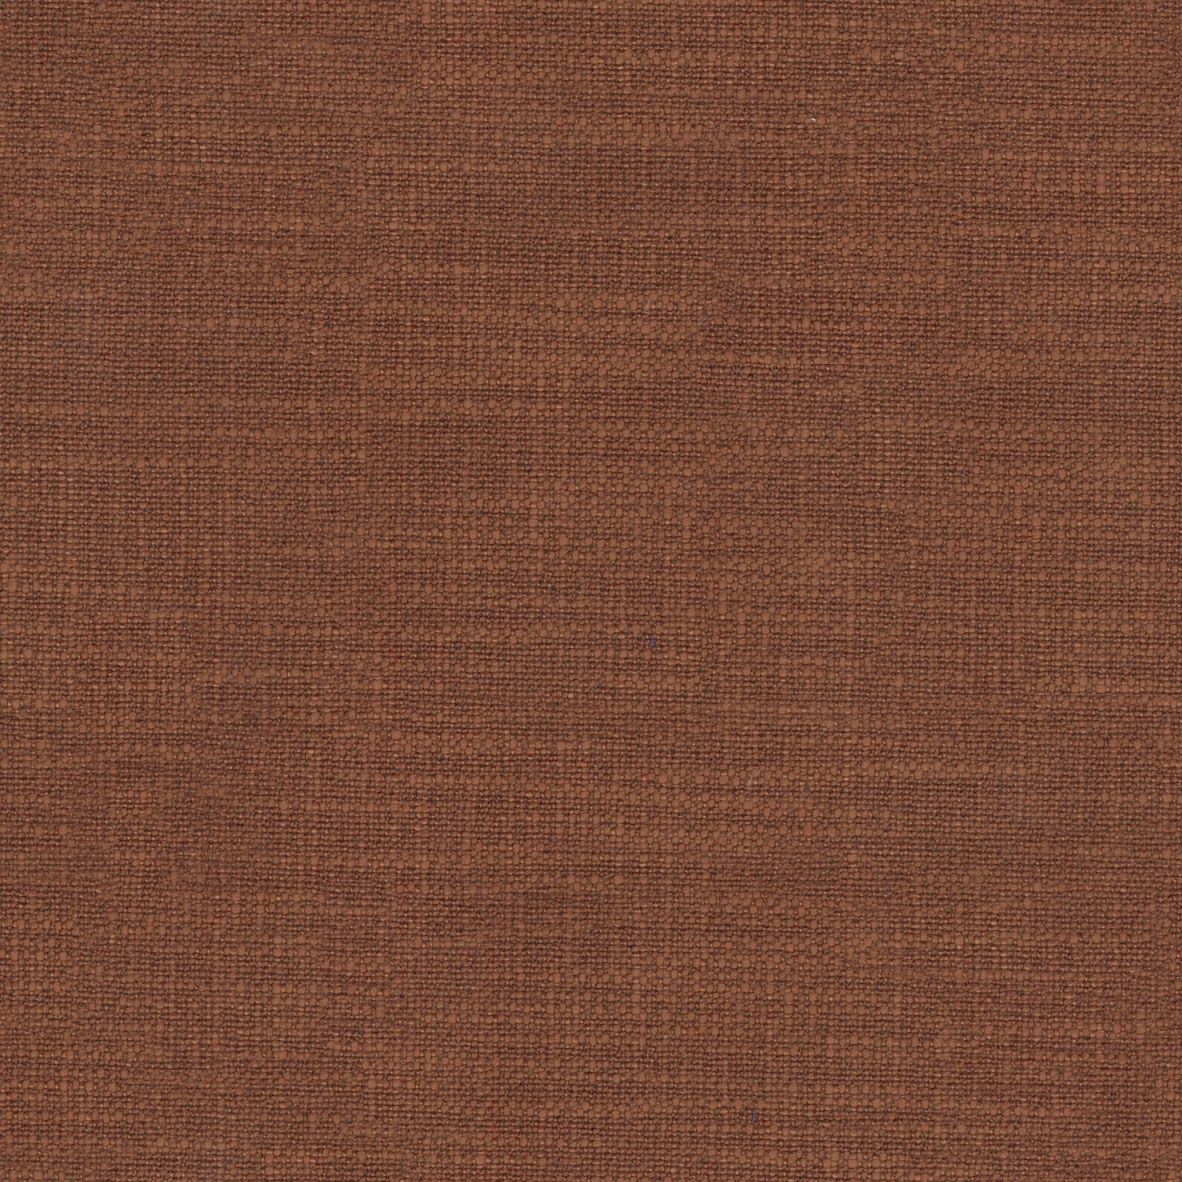 Brown Seamless Fabric Textures Seamless Brown Fabric Texture Maps Texturise Texturise